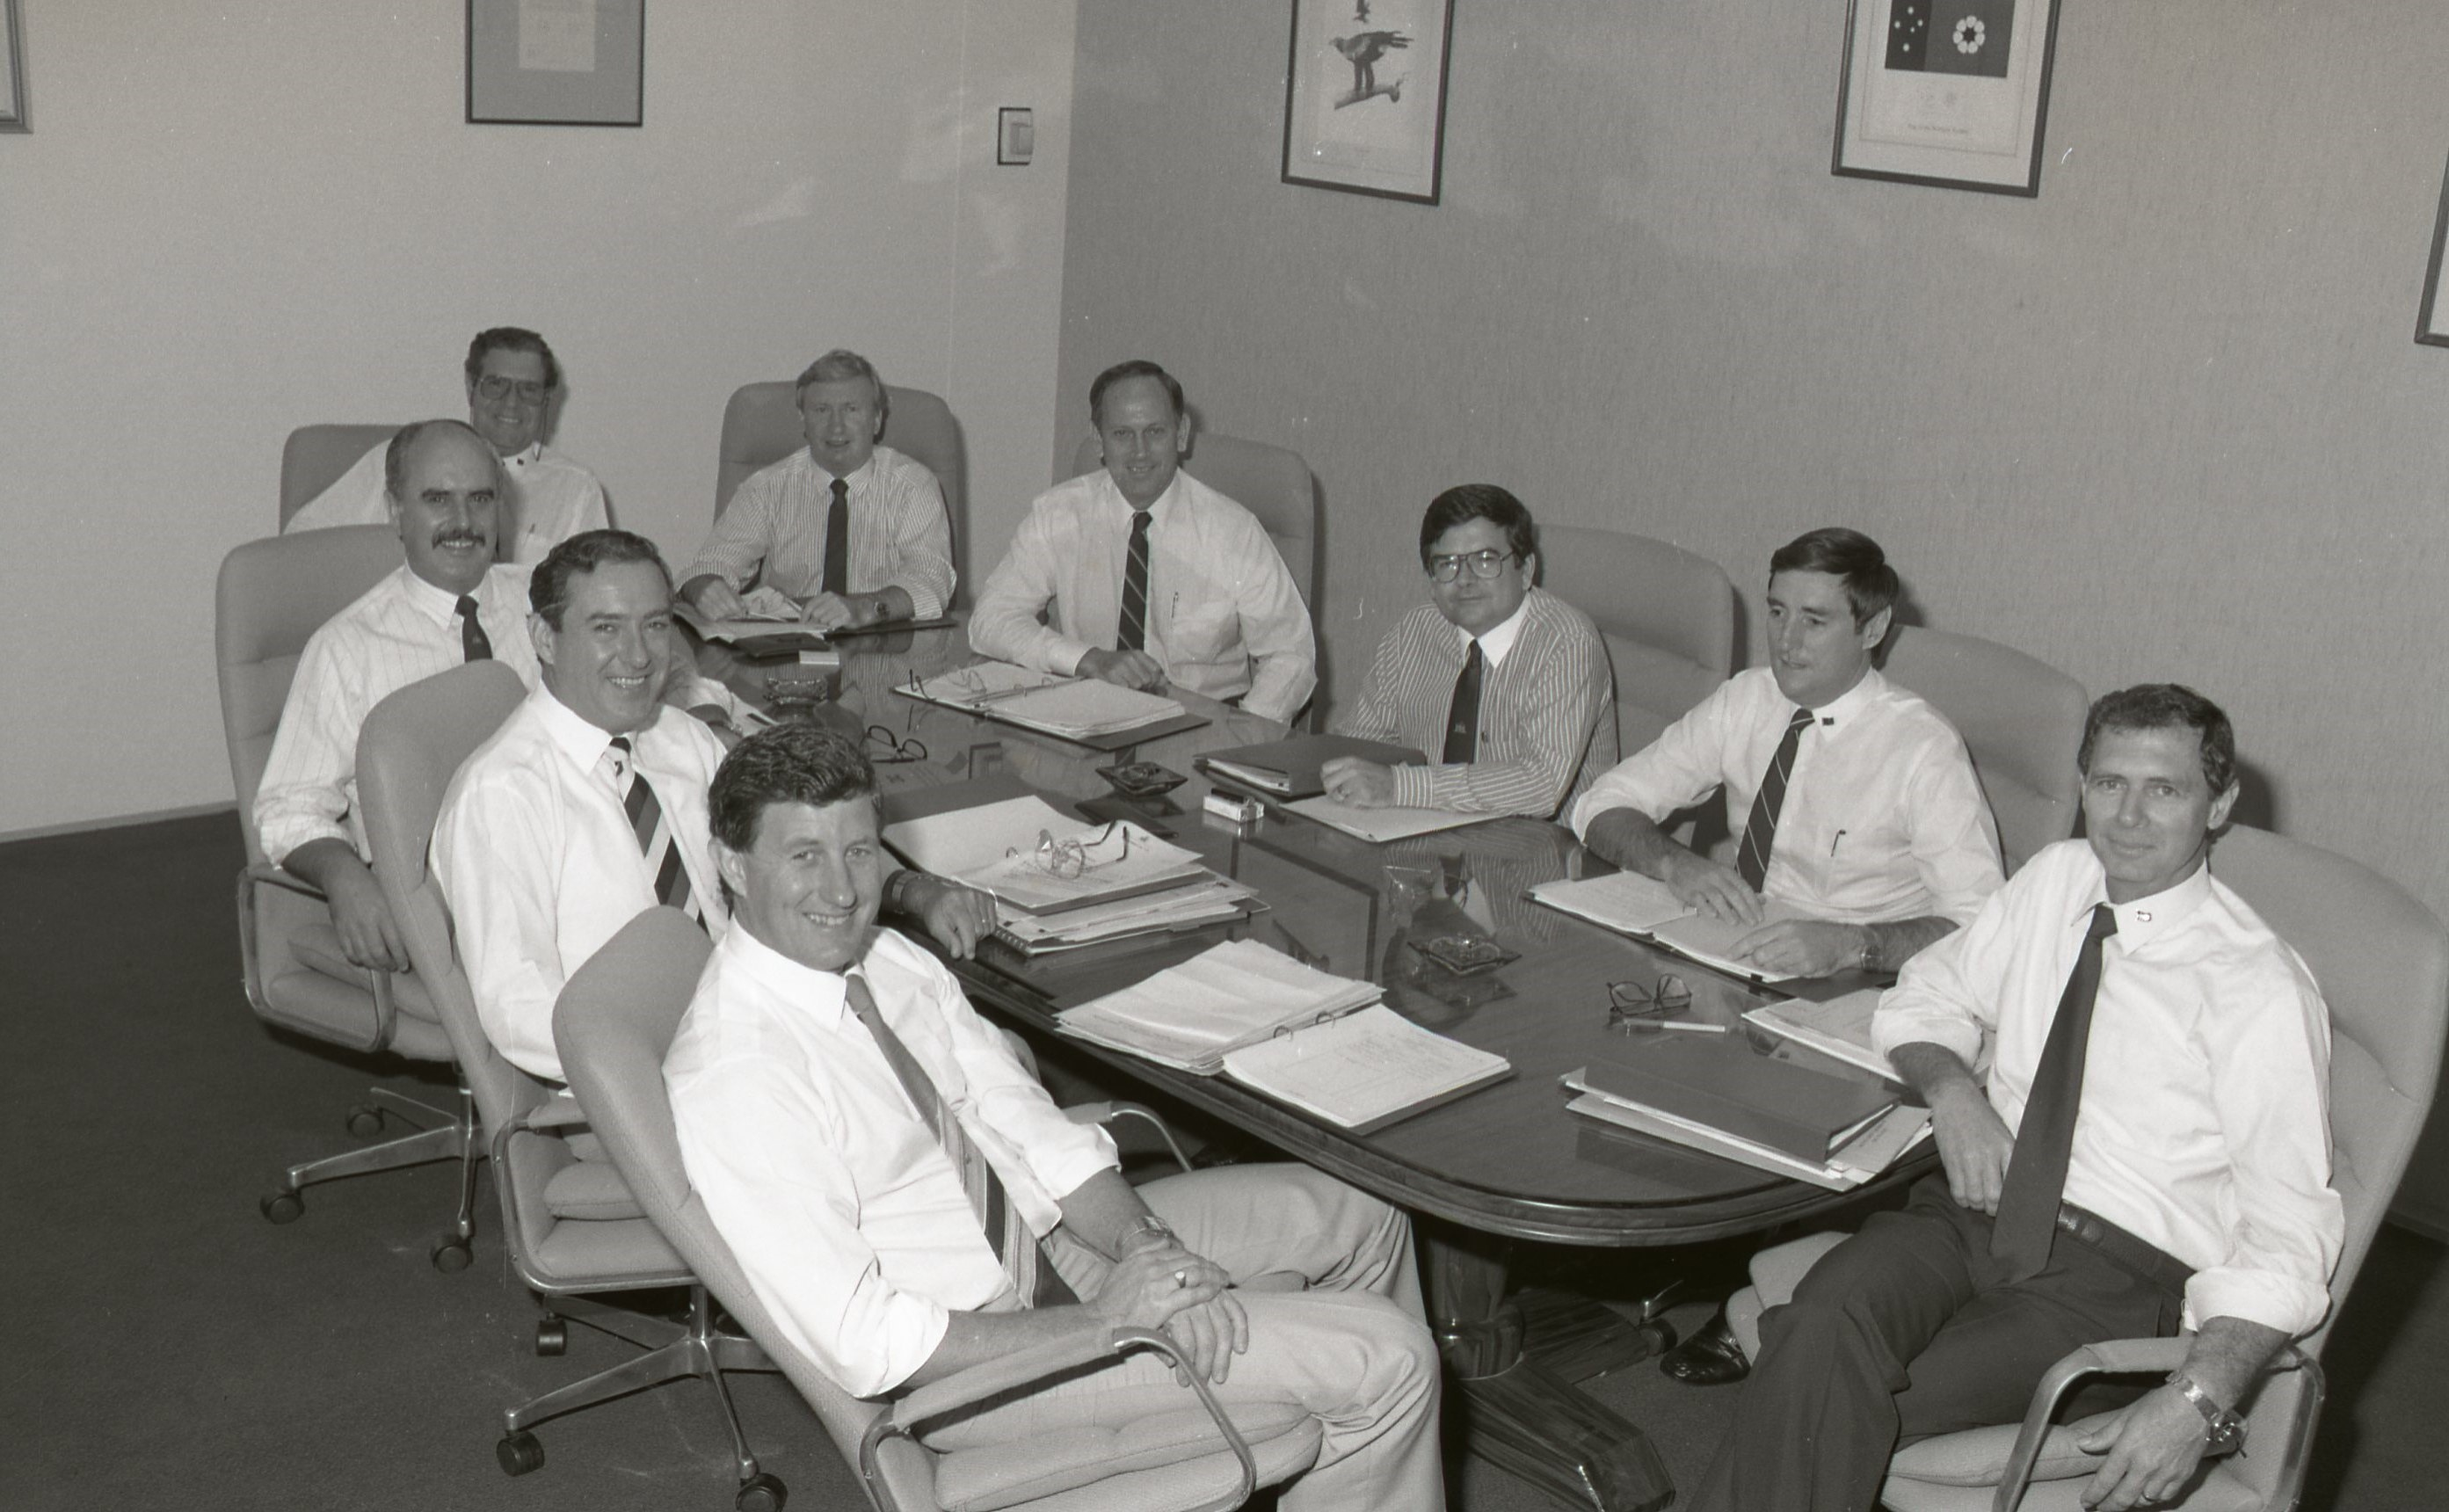 Cabinet members around the Cabinet Table, 14 March 1989<br />Image courtesy of Library & Archives NT,  Department of the Chief Minister, NTRS 3823 P1, Box 11, BW2799, Image 2